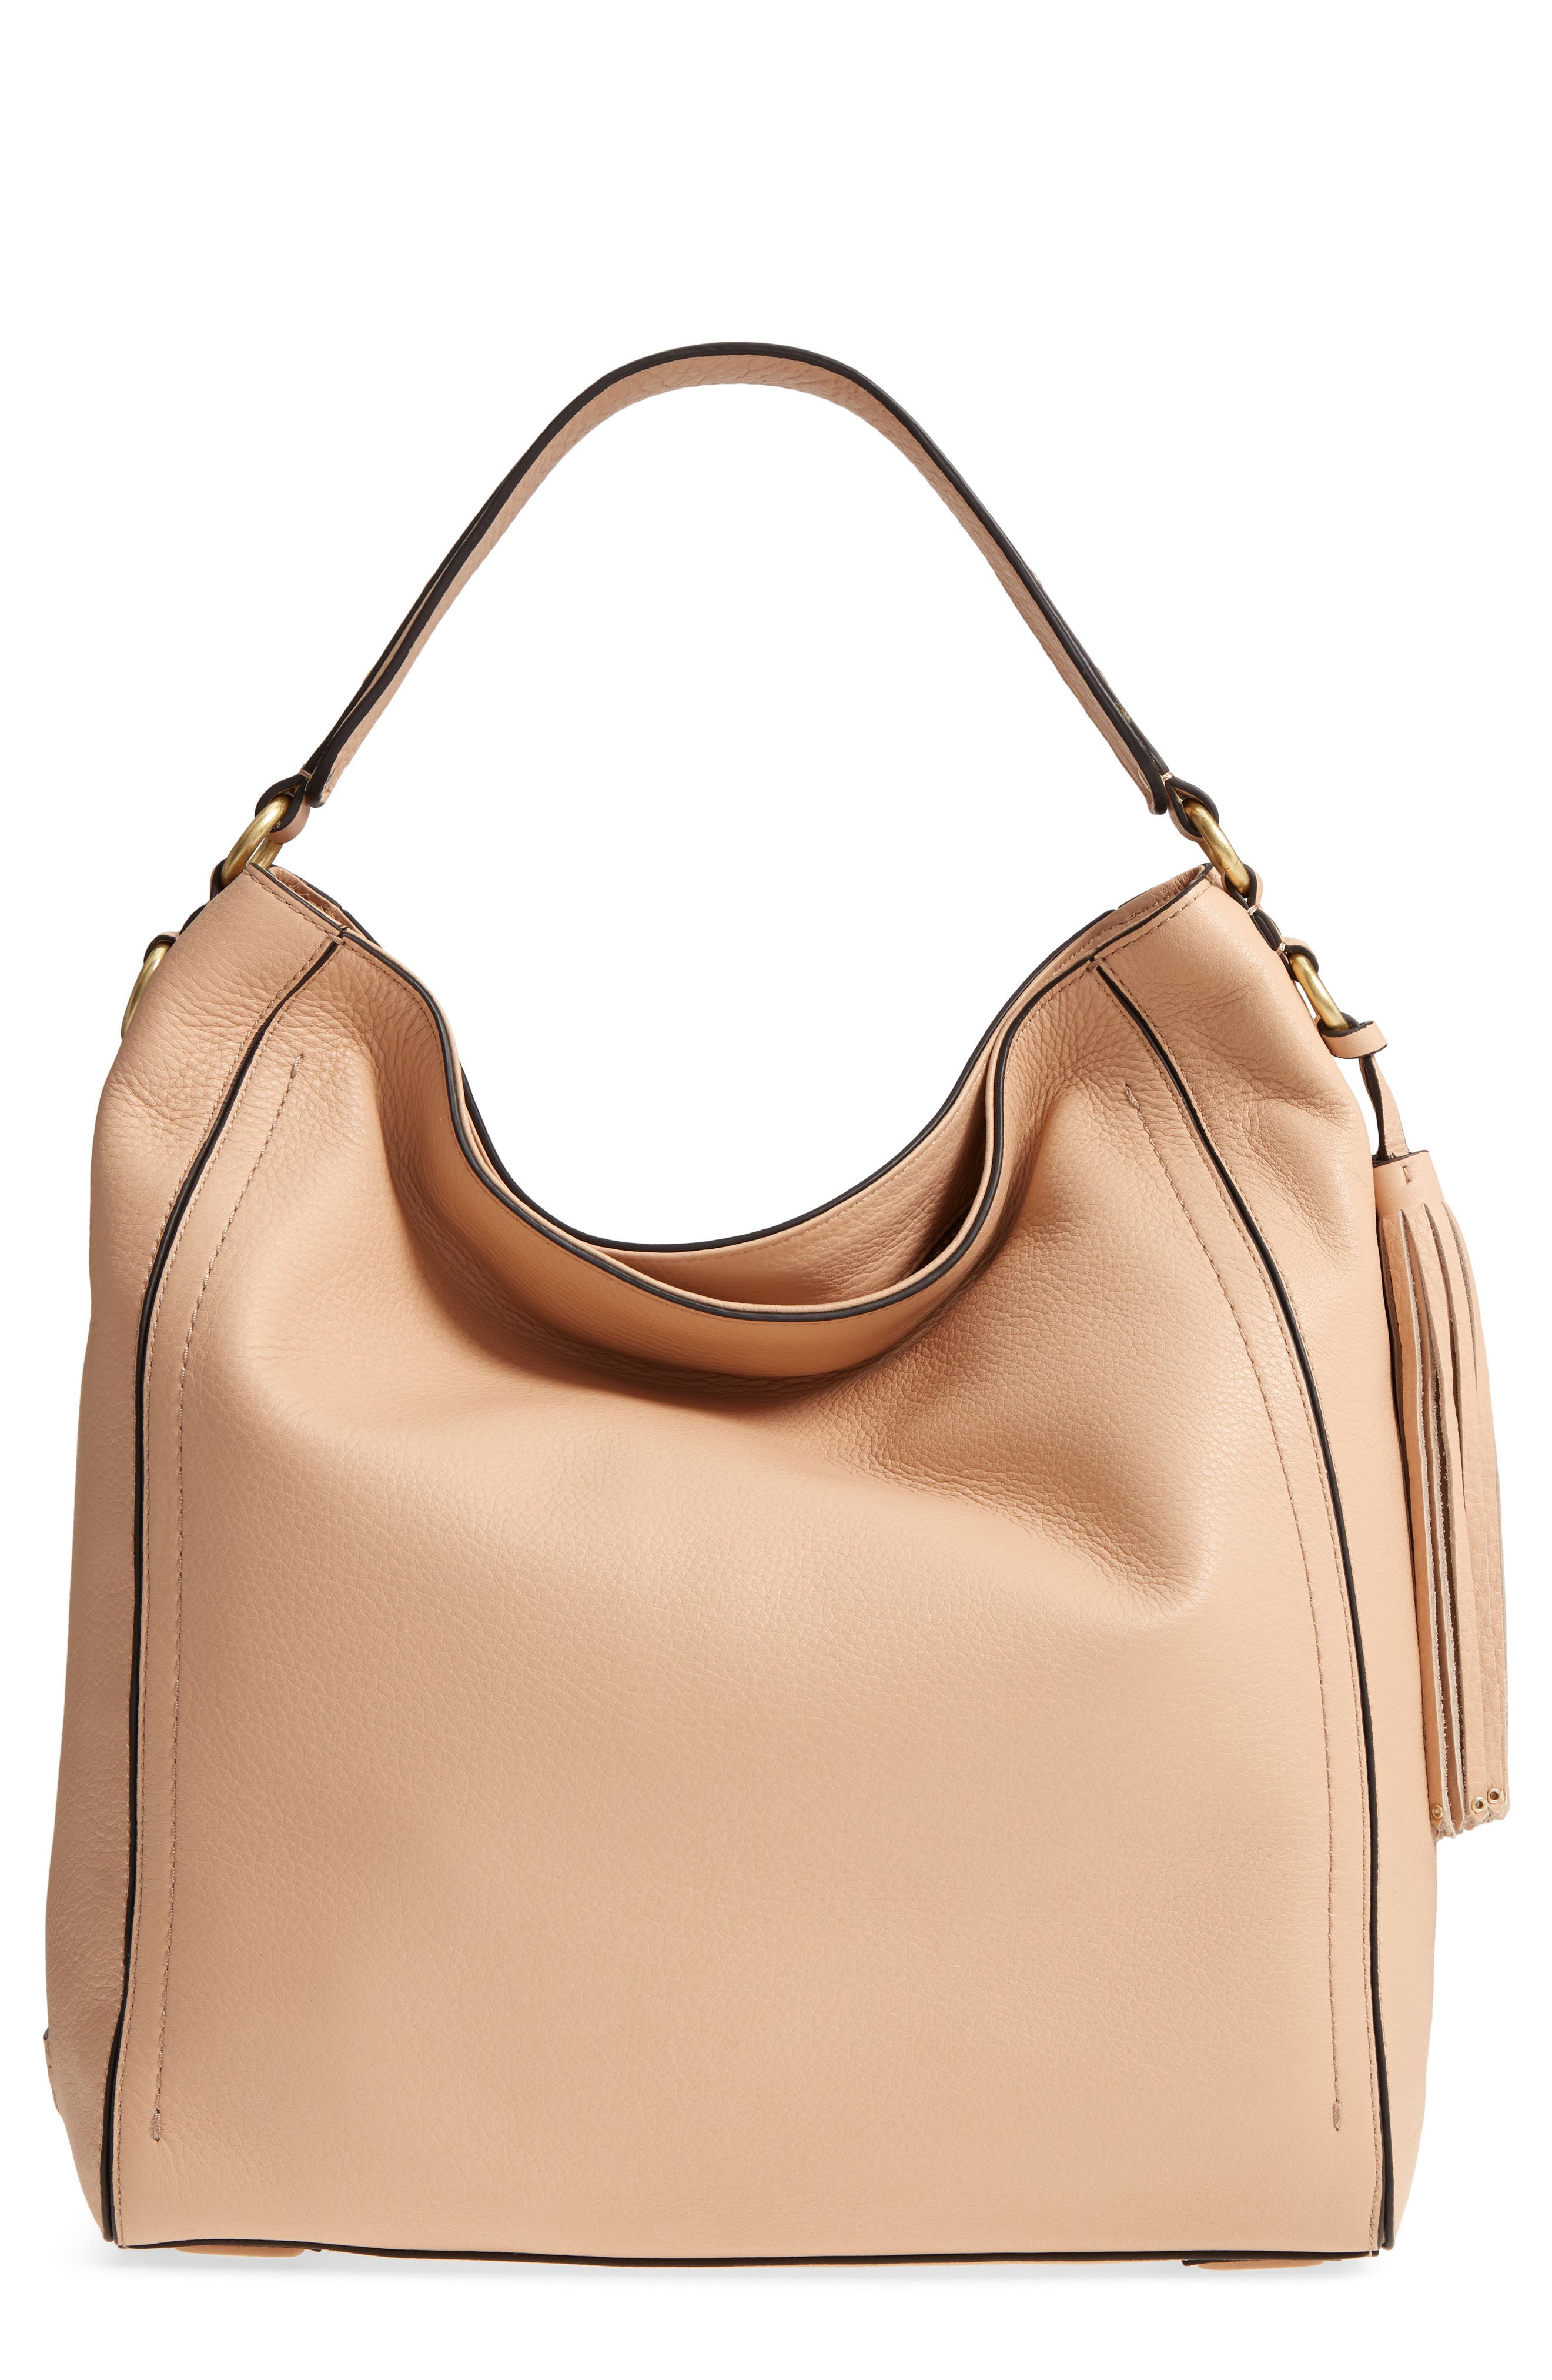 Cassidy RFID Pebbled Leather Bucket Bag,                             Main thumbnail 3, color,